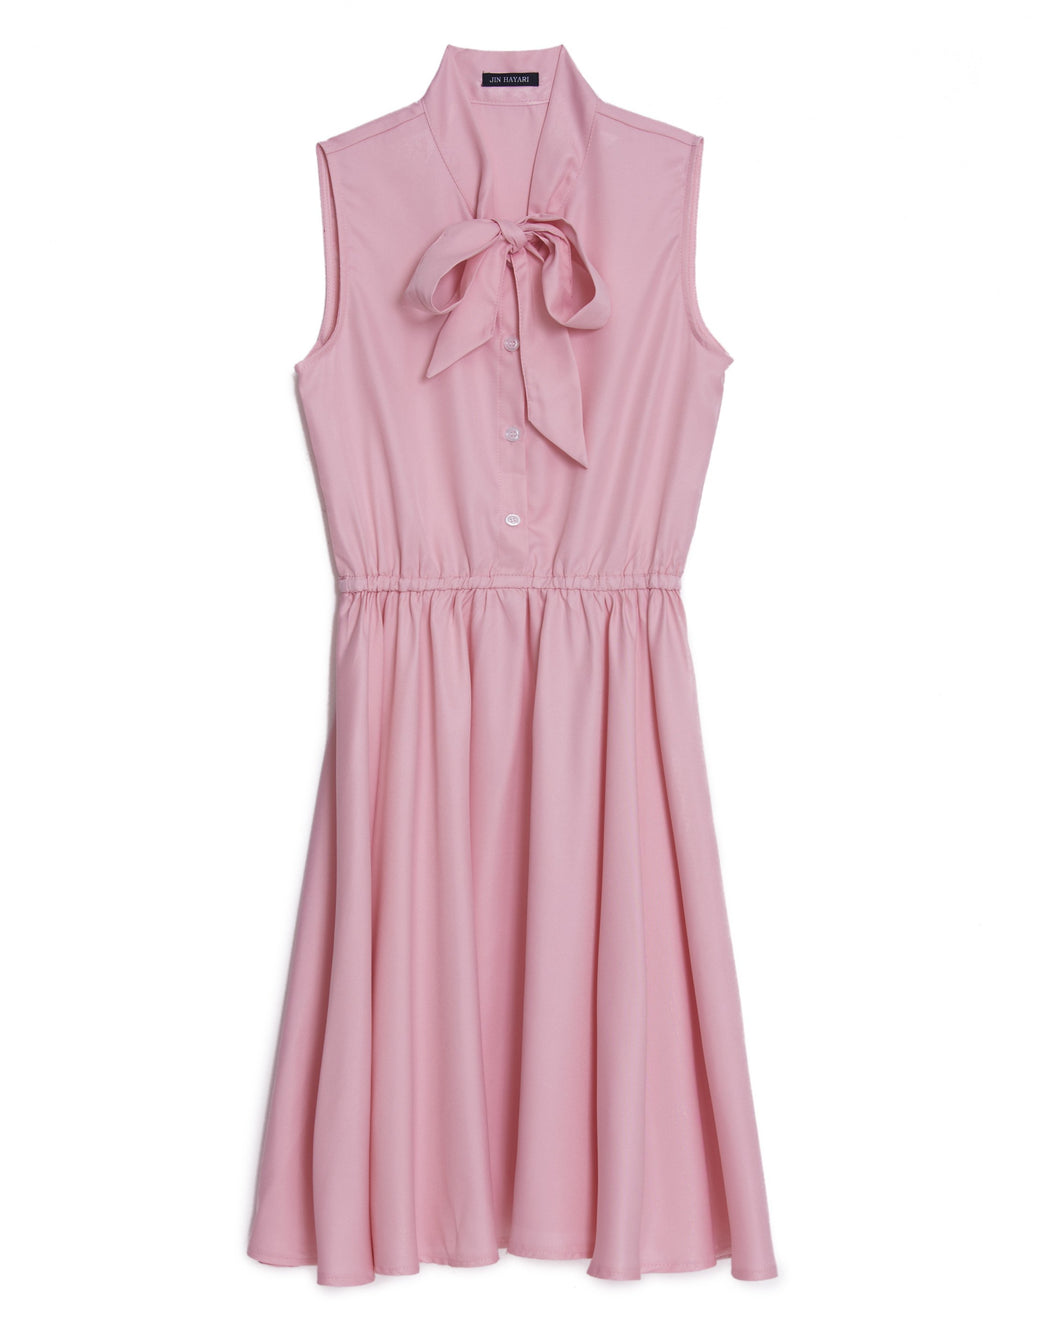 Ribbon Sleeveless Dress